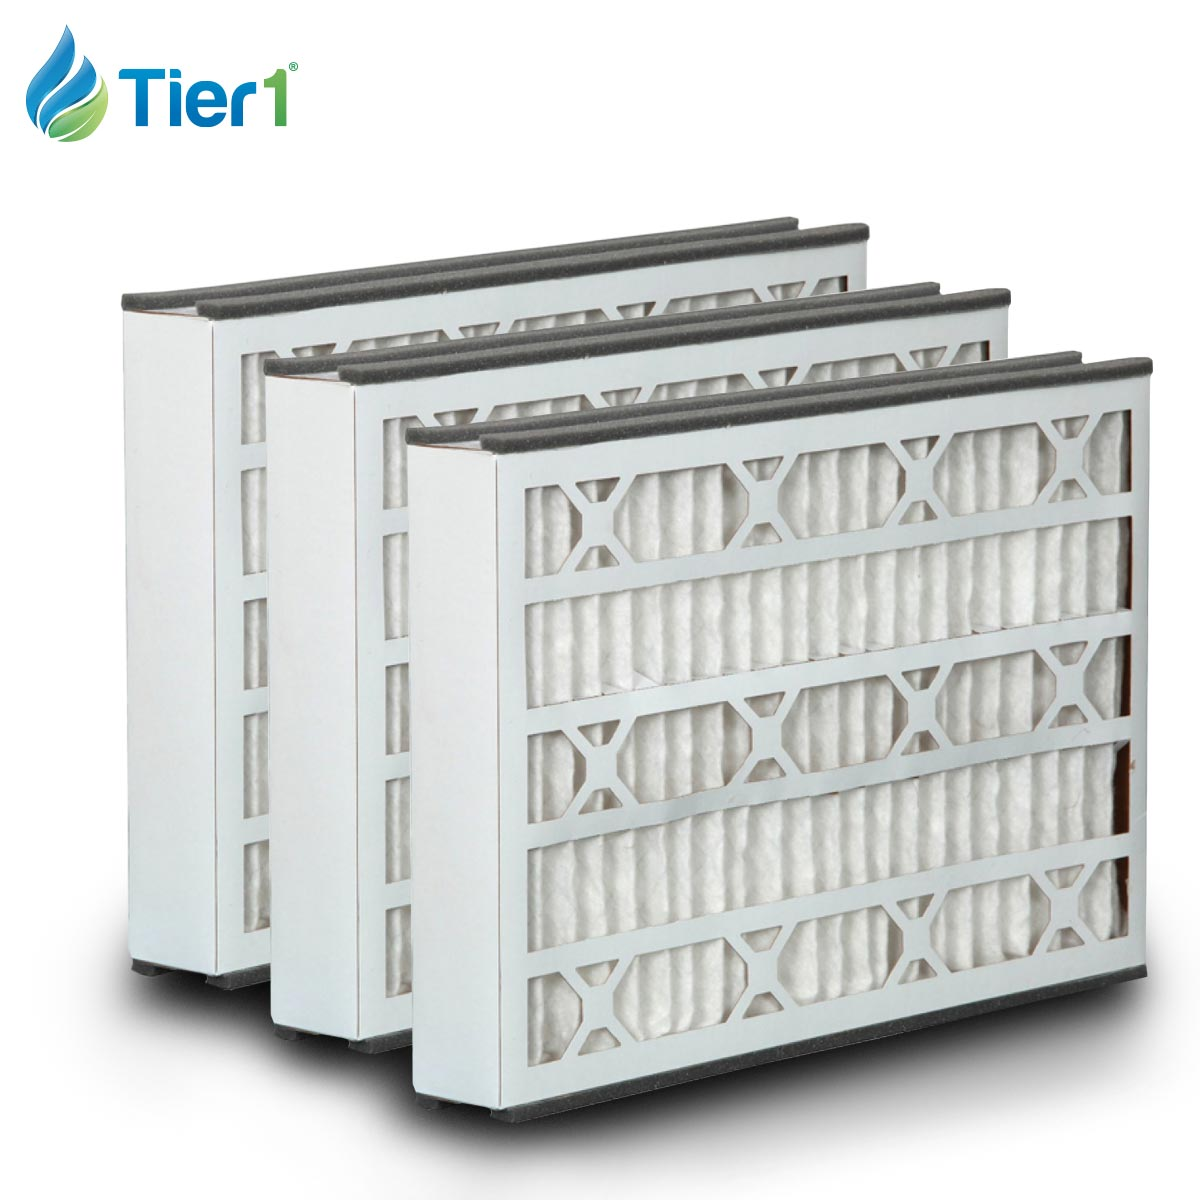 Tier1 brand replacement for BDP - 16 x 25 x 3 - MERV 11 (3-Pack) TIER1-DPFR16X25X3M11DBP